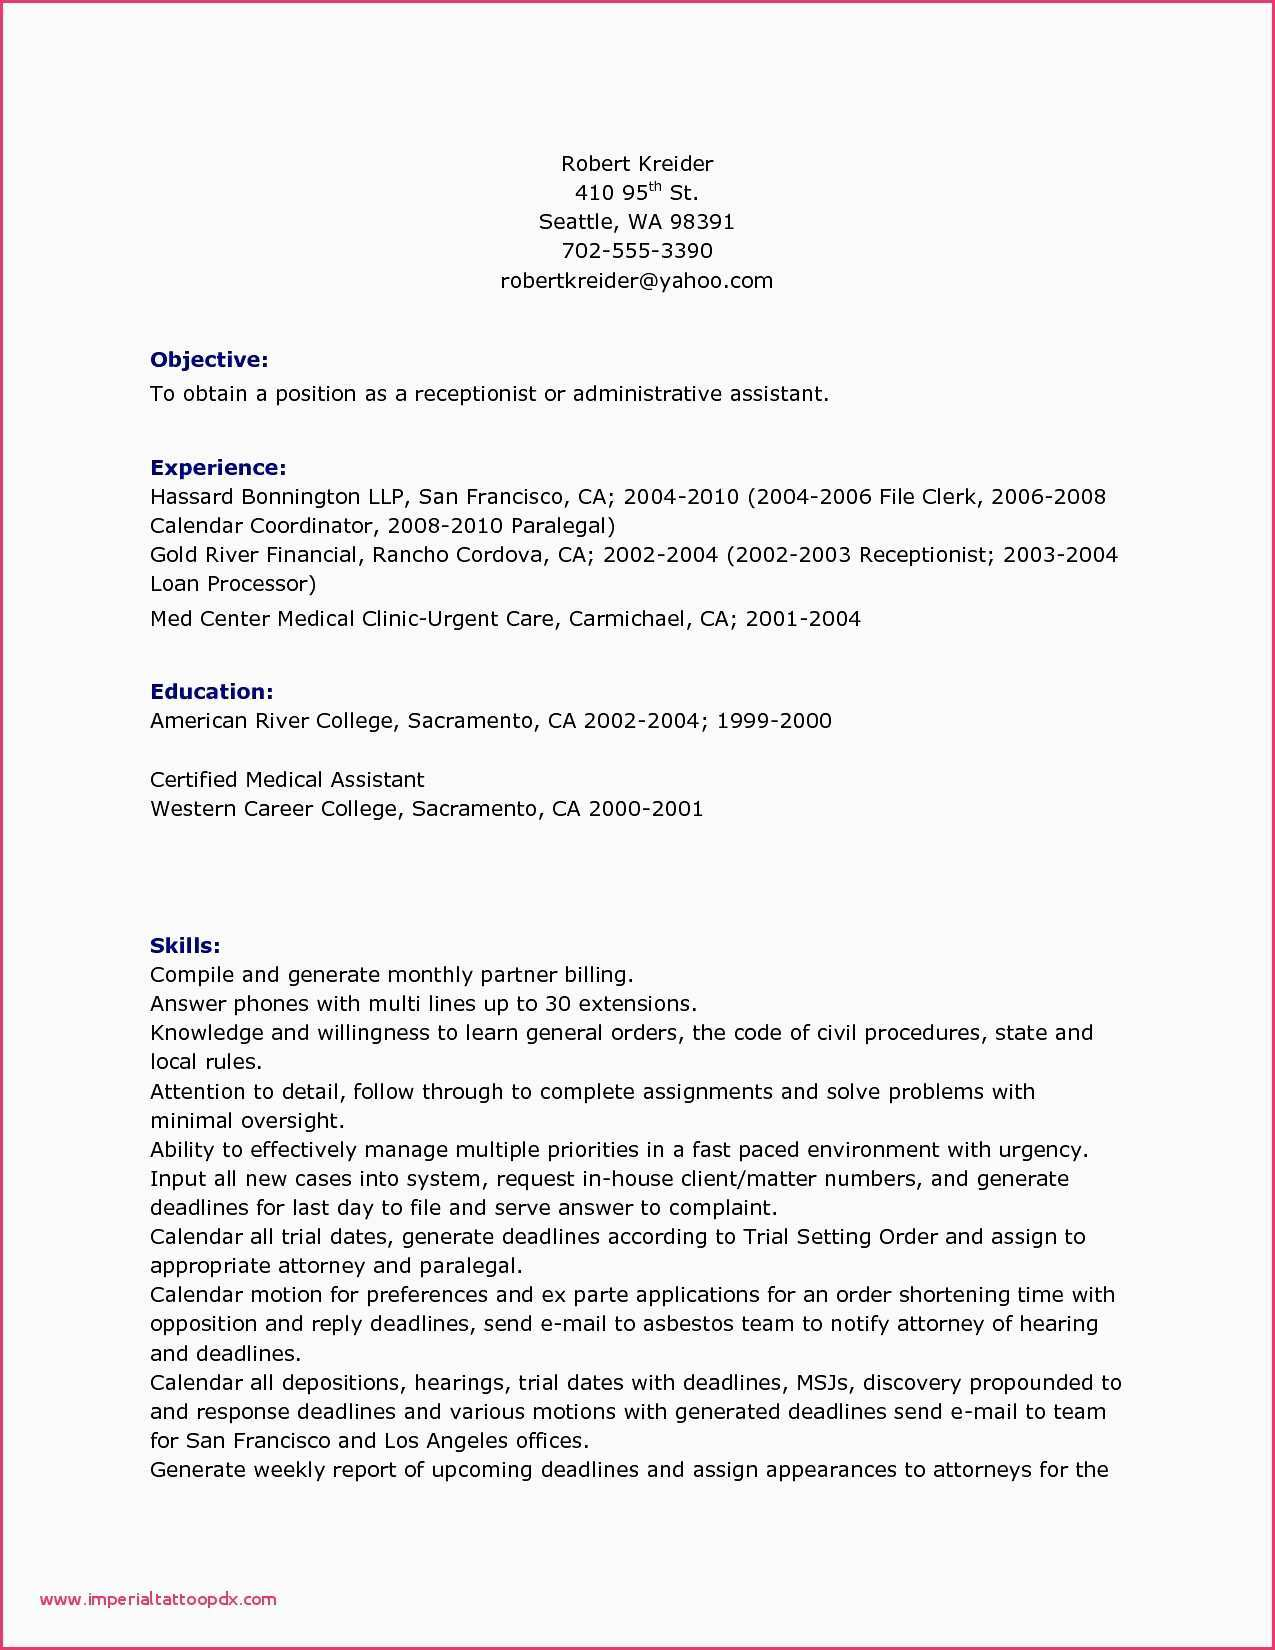 Medical assistant Resume with No Experience - Medical Receptionist Resume Sample No Experience 30 Great